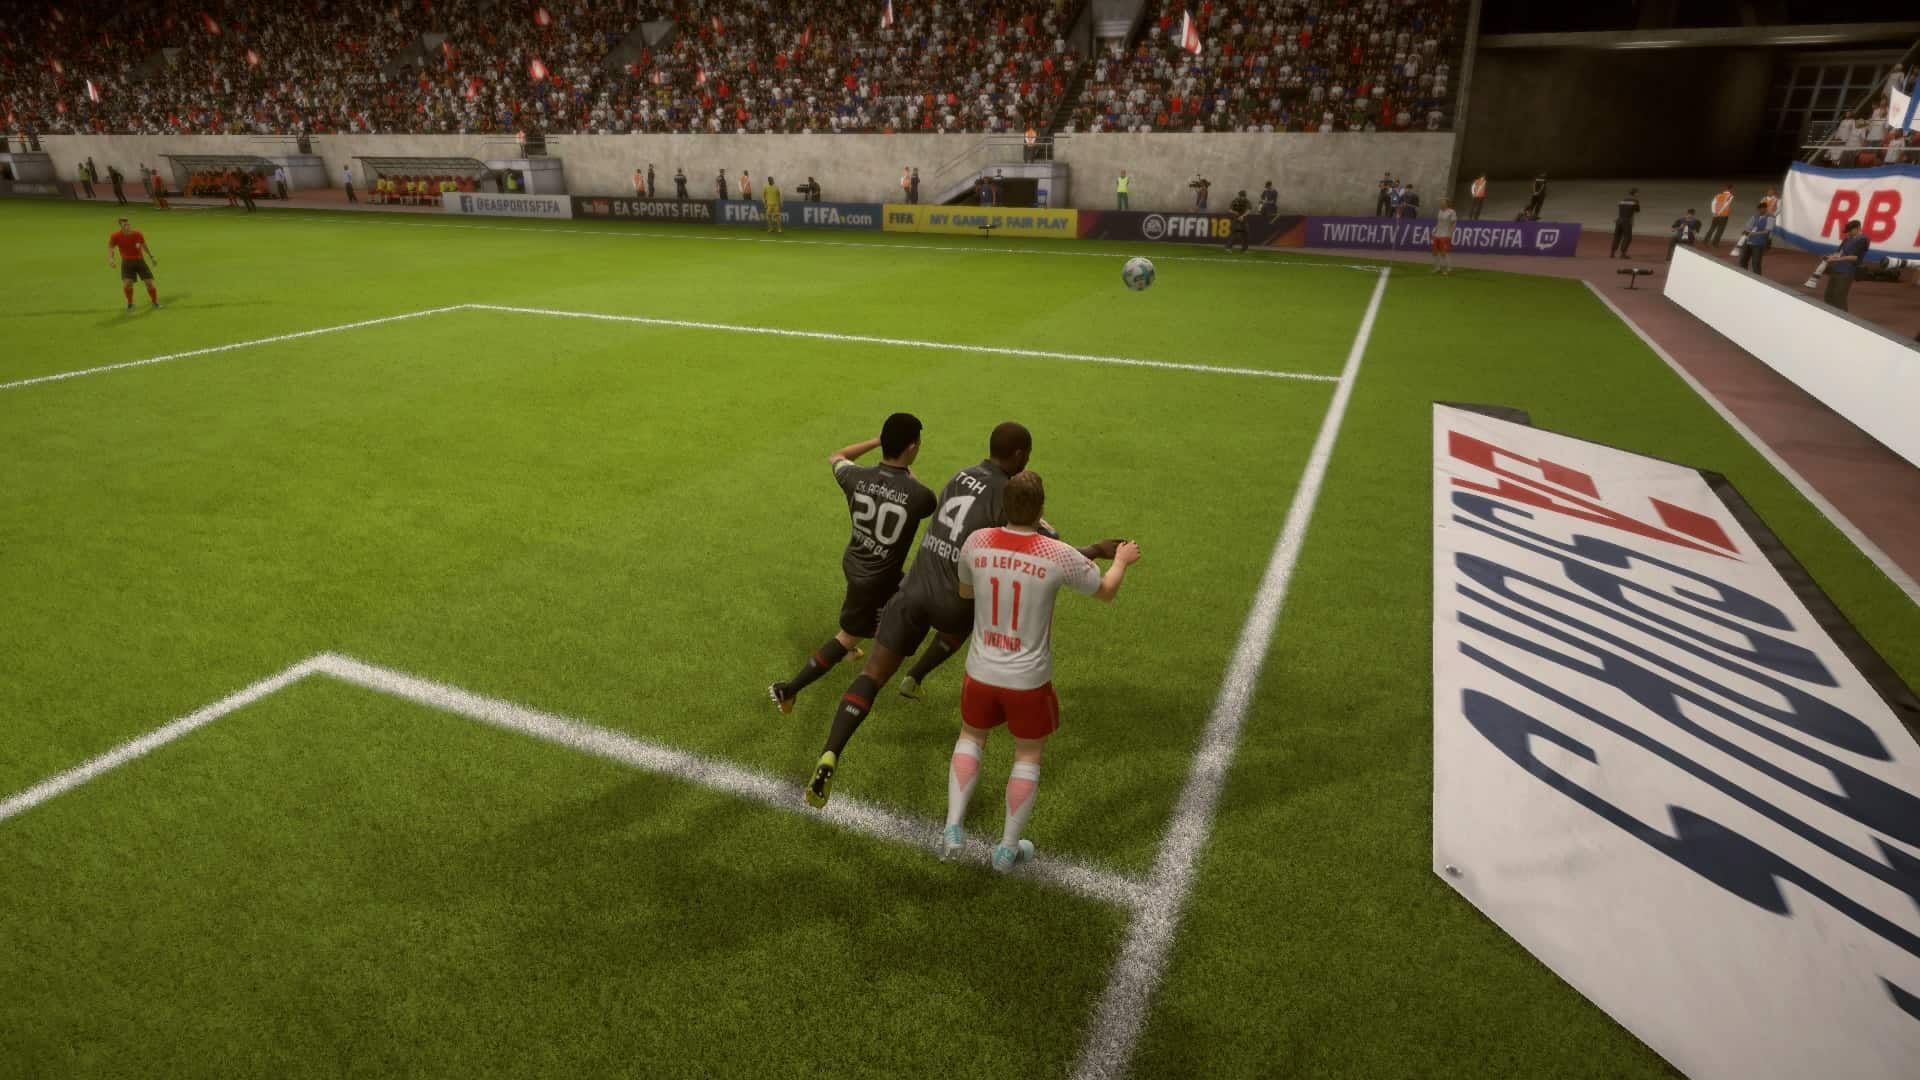 Jonathan Tah shows his strength in FIFA 18